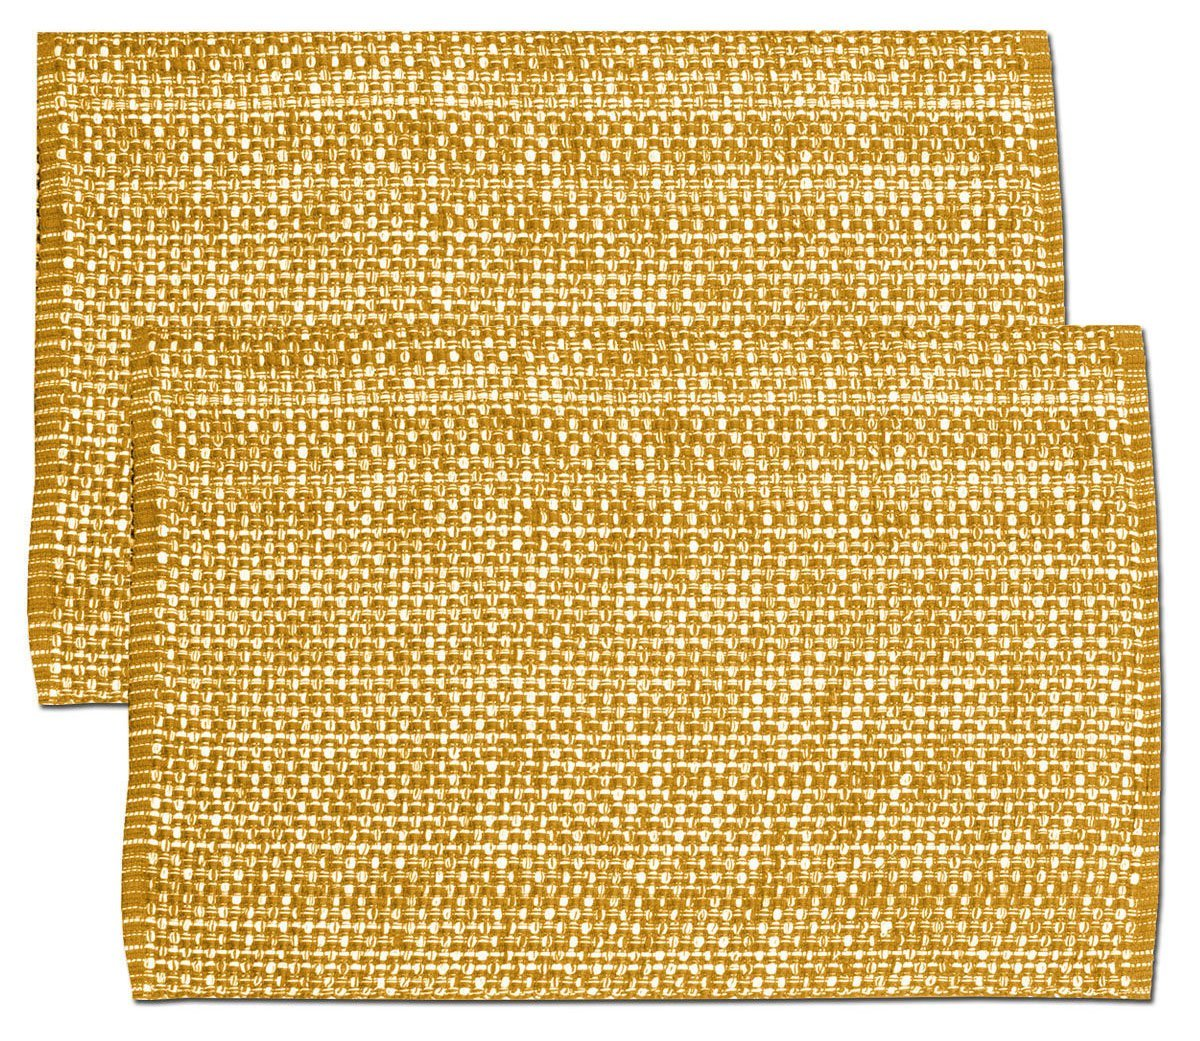 """Unique & Custom {13 x 19'' Inch} Set Pack of 2 Rectangle """"Non-Slip Grip Texture"""" Large Table Placemats Made of Washable Flexible 100% Cotton w/ Woven Country Modern Design [Yellow/Orange Color]"""